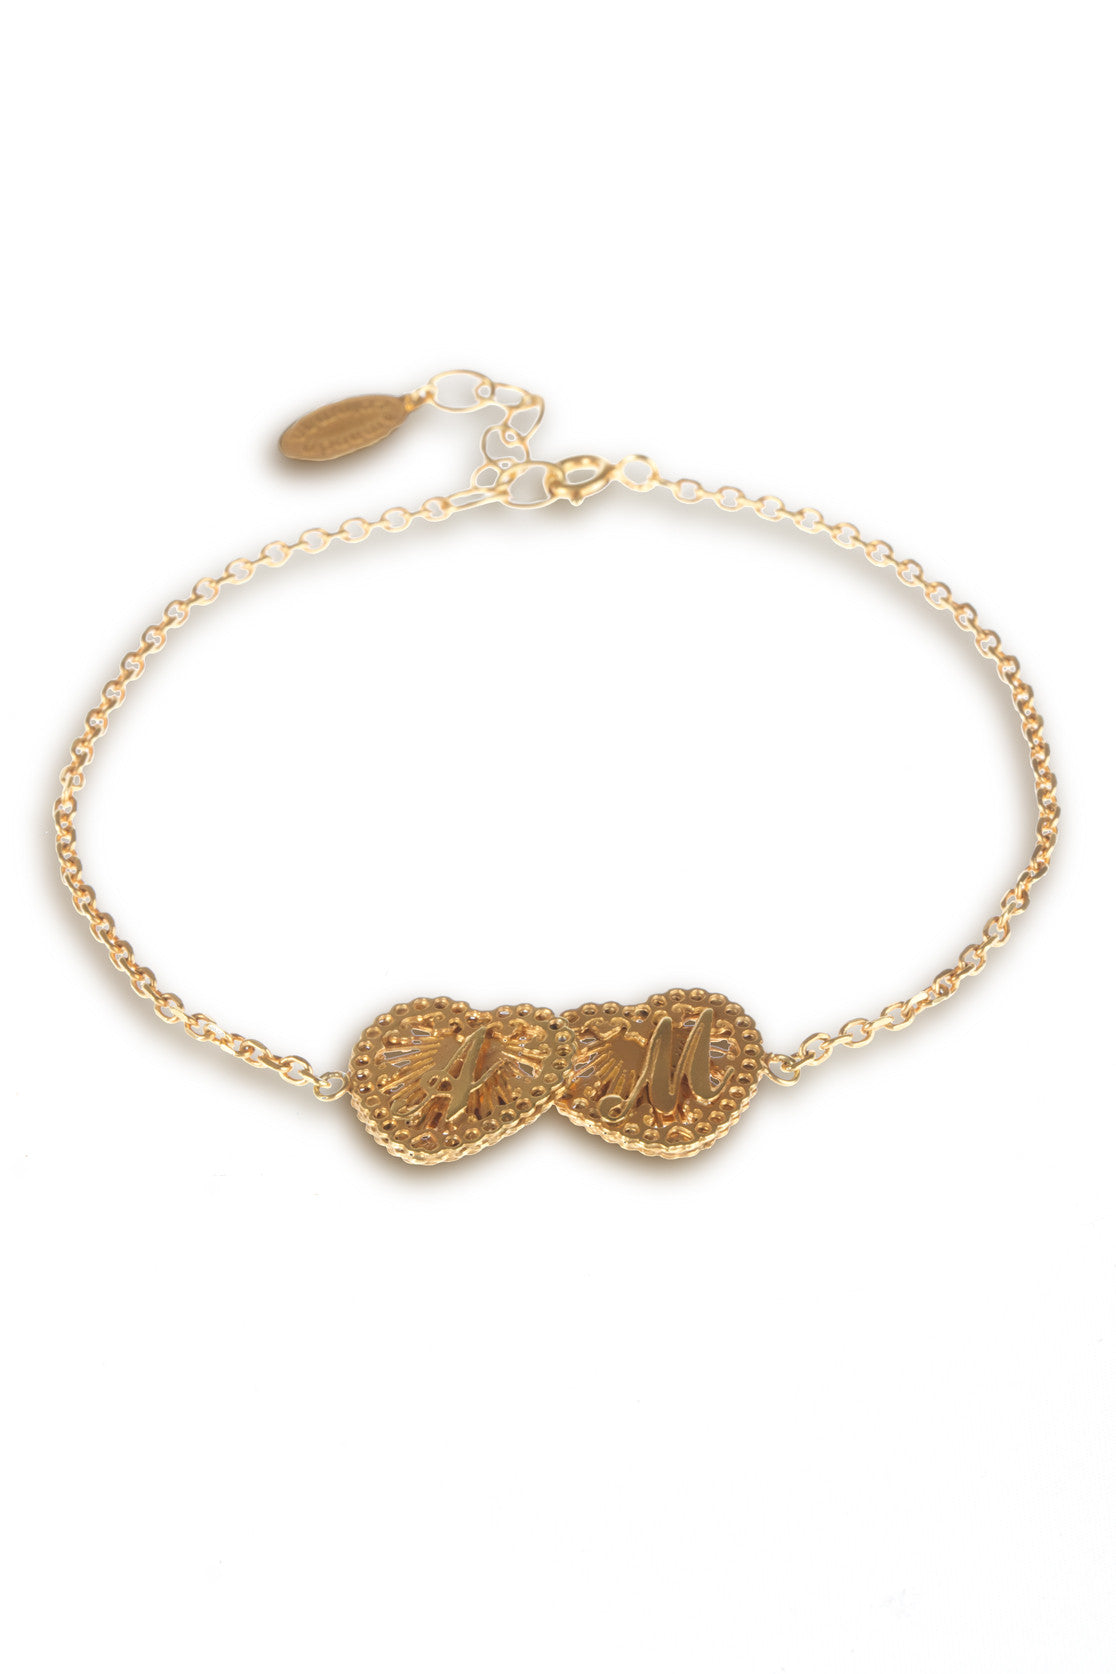 Initialed double Love Heart Bracelet